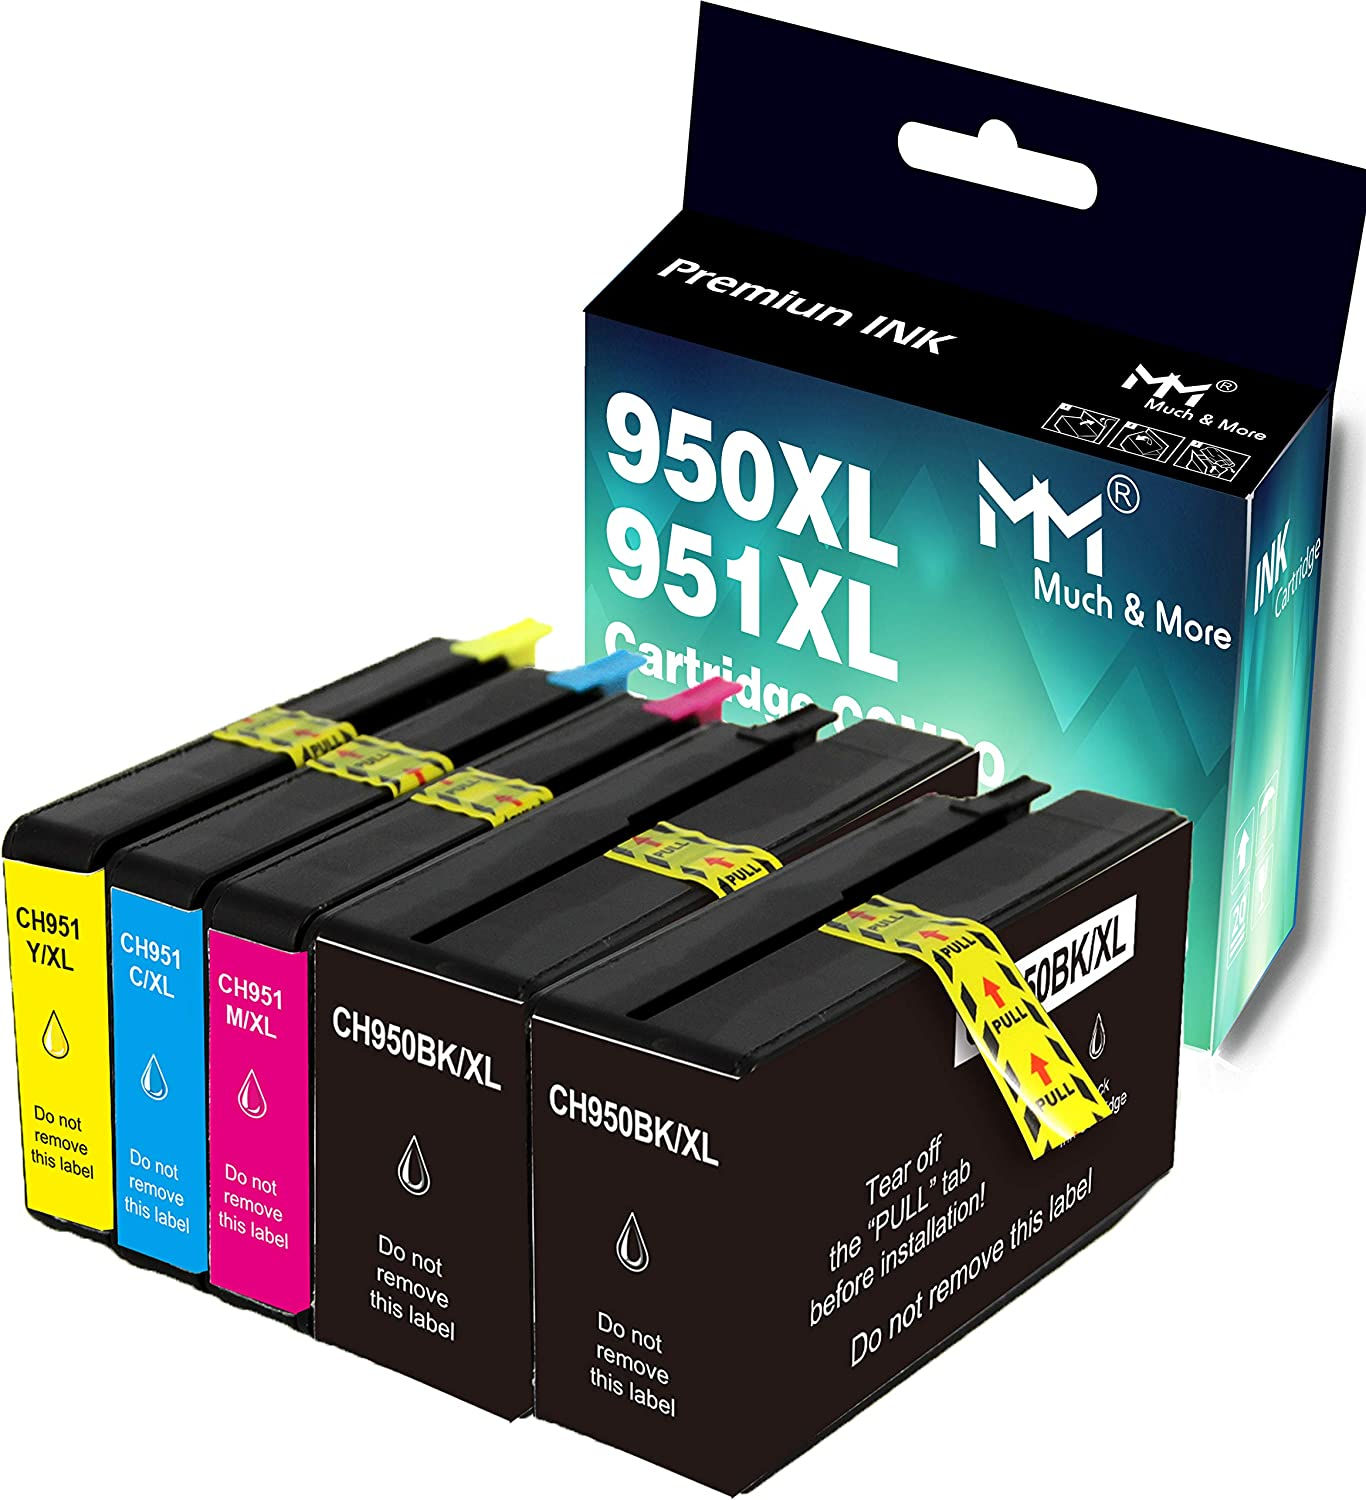 MM MUCH & MORE Compatible Ink Cartridge Replacement for HP 950XL 951XL 950 XL 951 XL to use for OfficeJet Pro 8630 8640 8610 8620 276dw 251dw Printer (5-Pack, 2 x Black, Cyan, Magenta, Yellow)